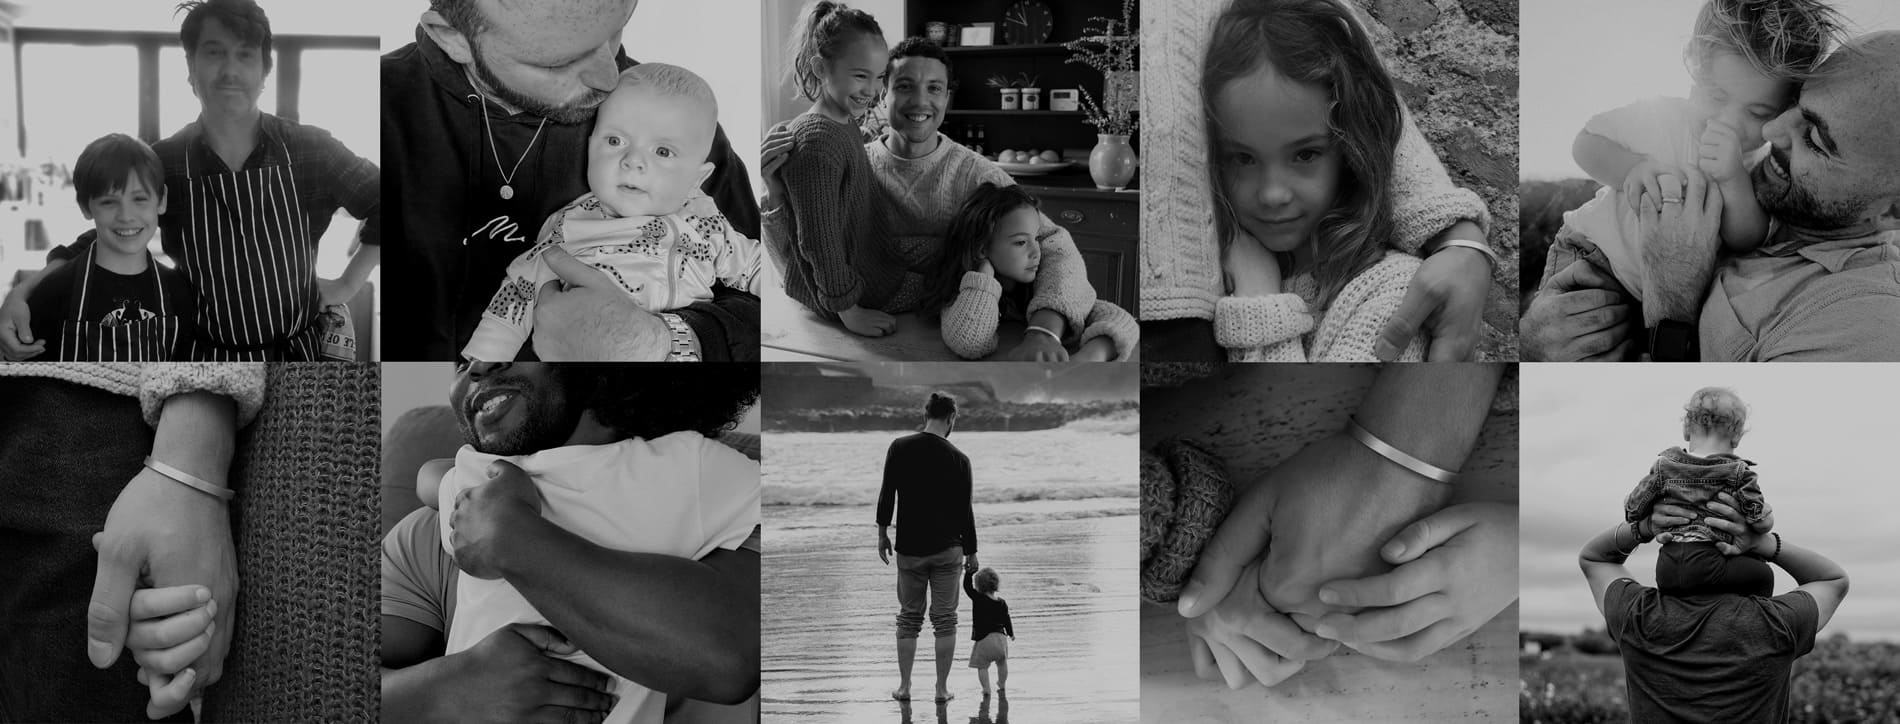 Collection of images of fathers and children in black and white